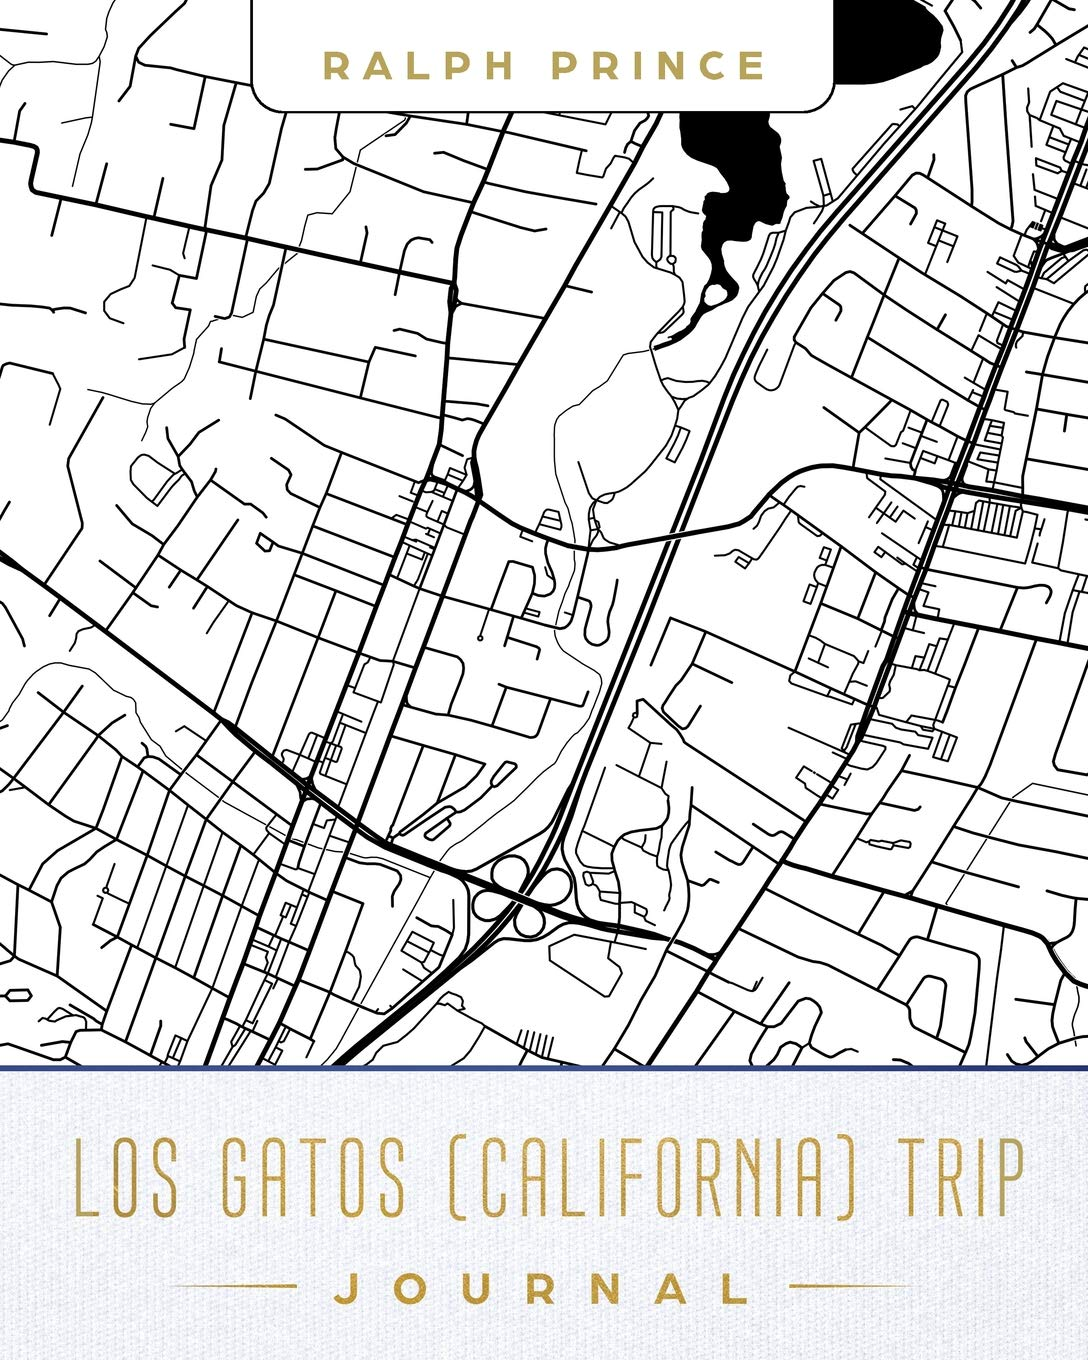 Los Gatos California Trip Journal Lined Los Gatos California